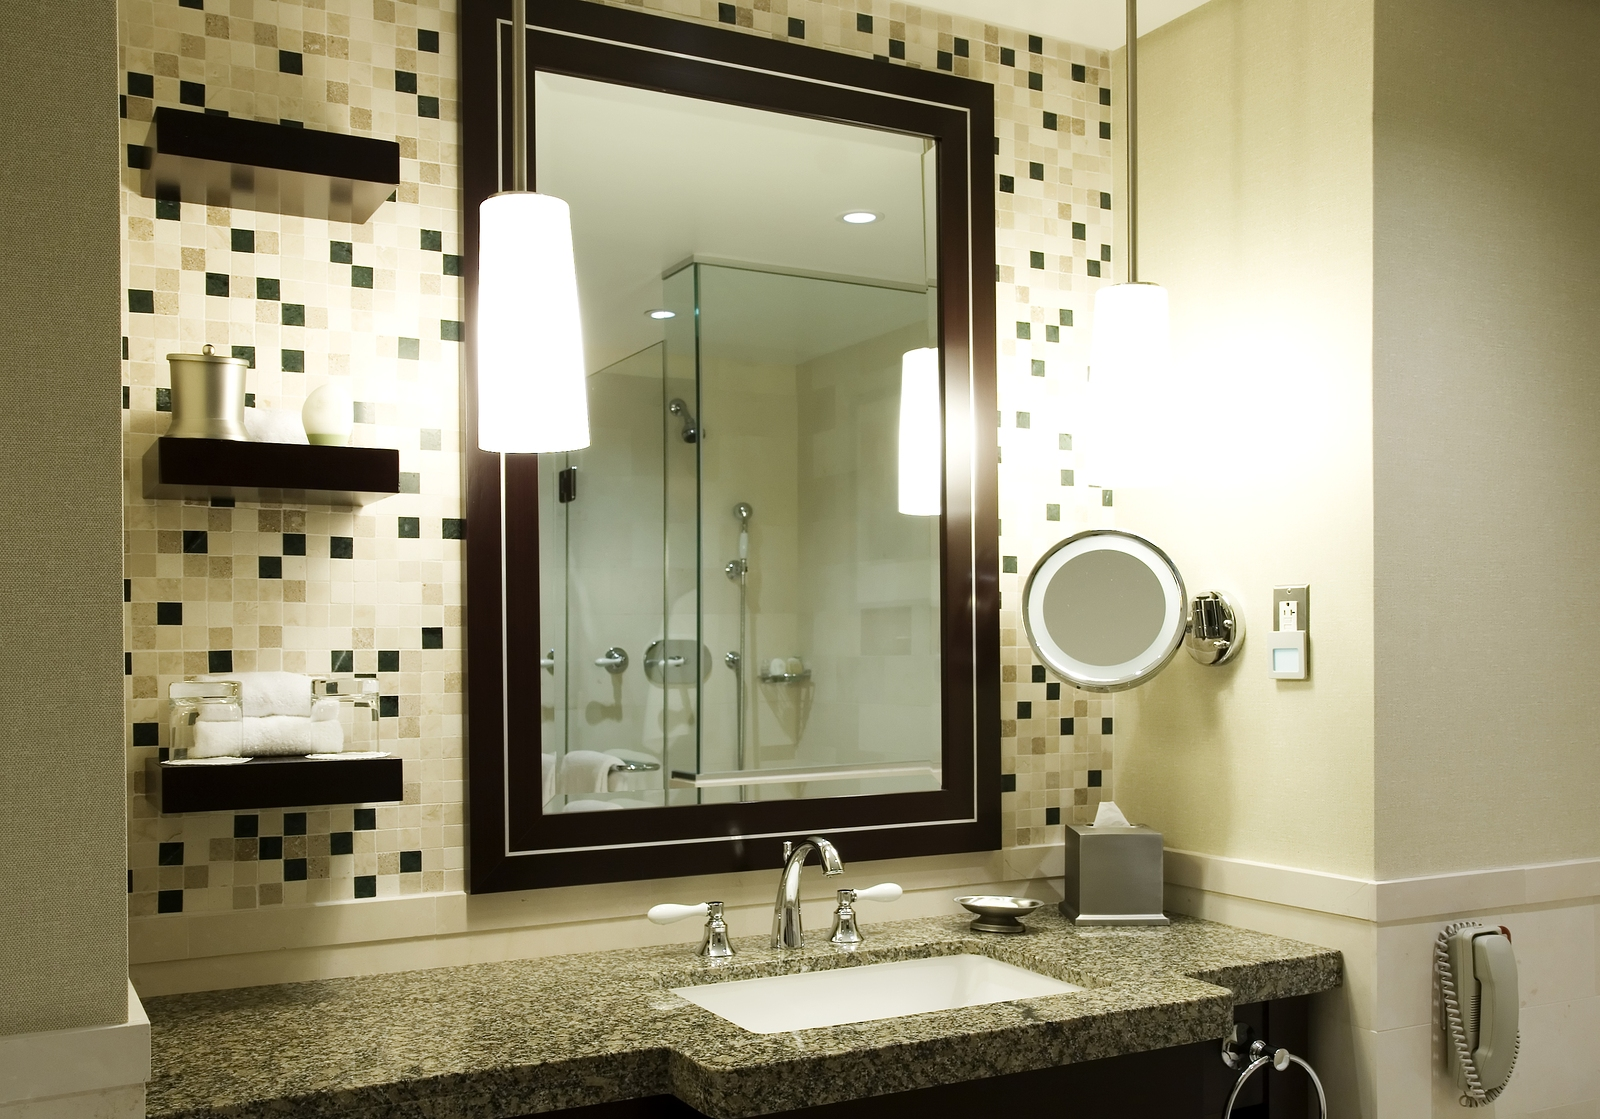 Small bathroom design ideas and inspiration dallas for Small bathroom designs bloggers